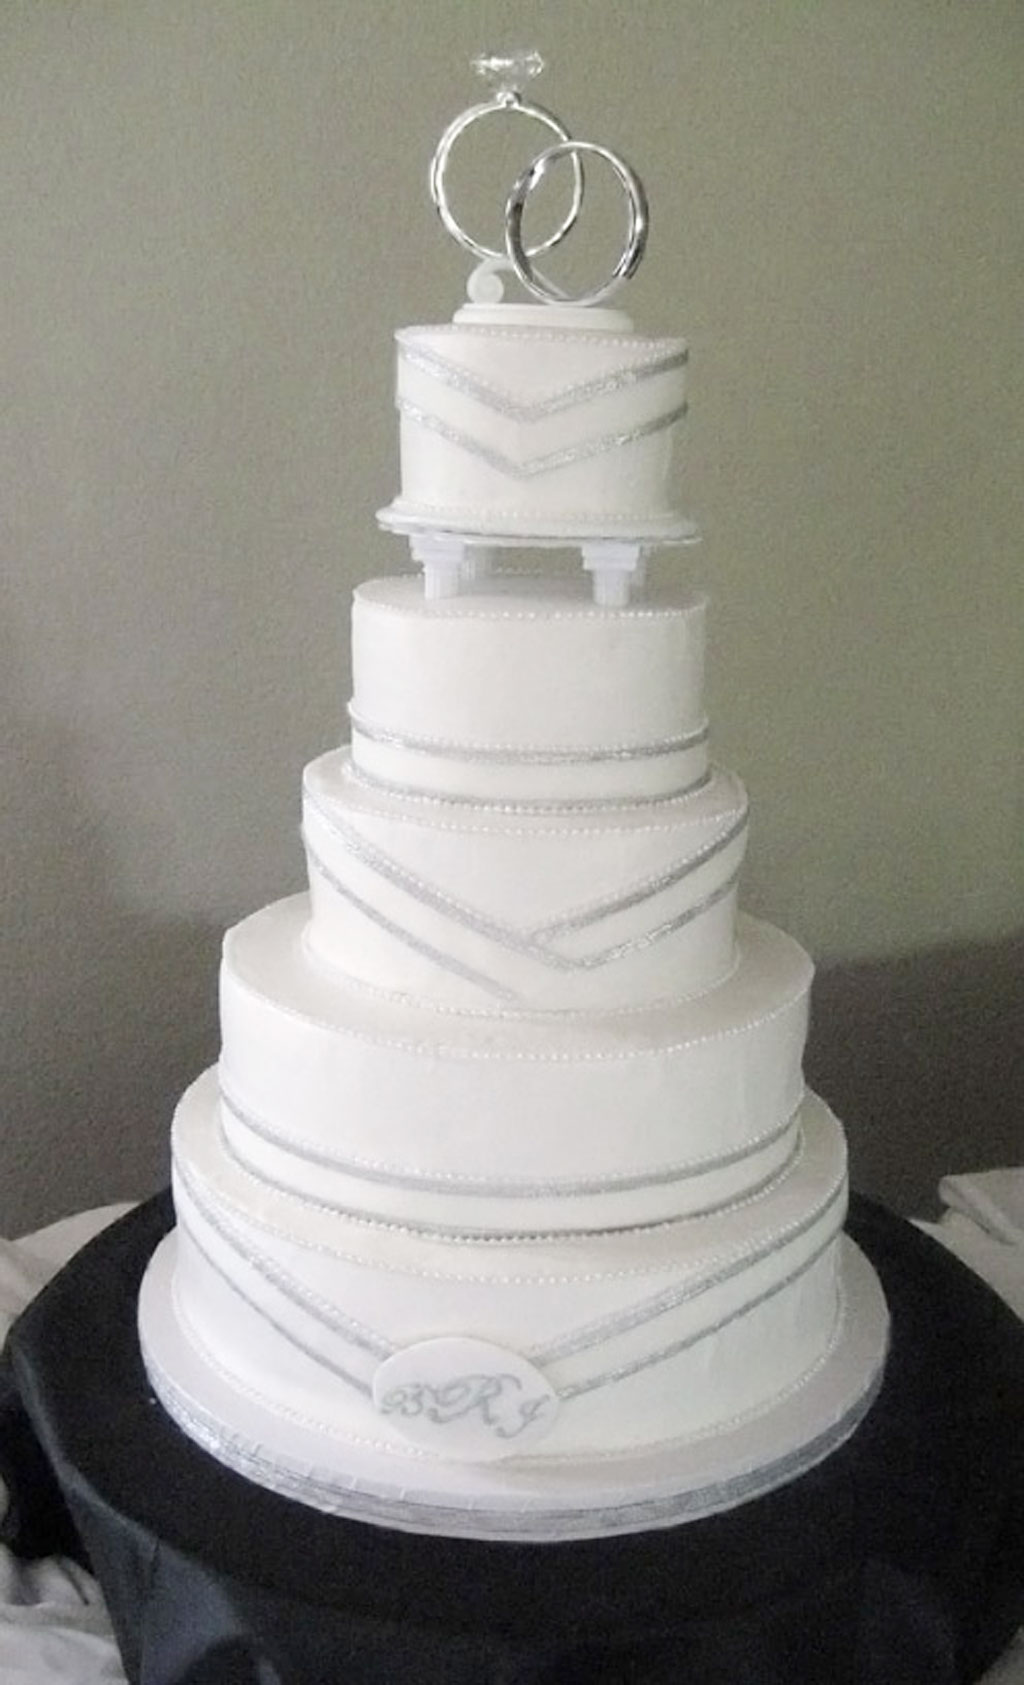 12 Small Simple Silver Wedding Cakes Photo - Small Simple Wedding ...